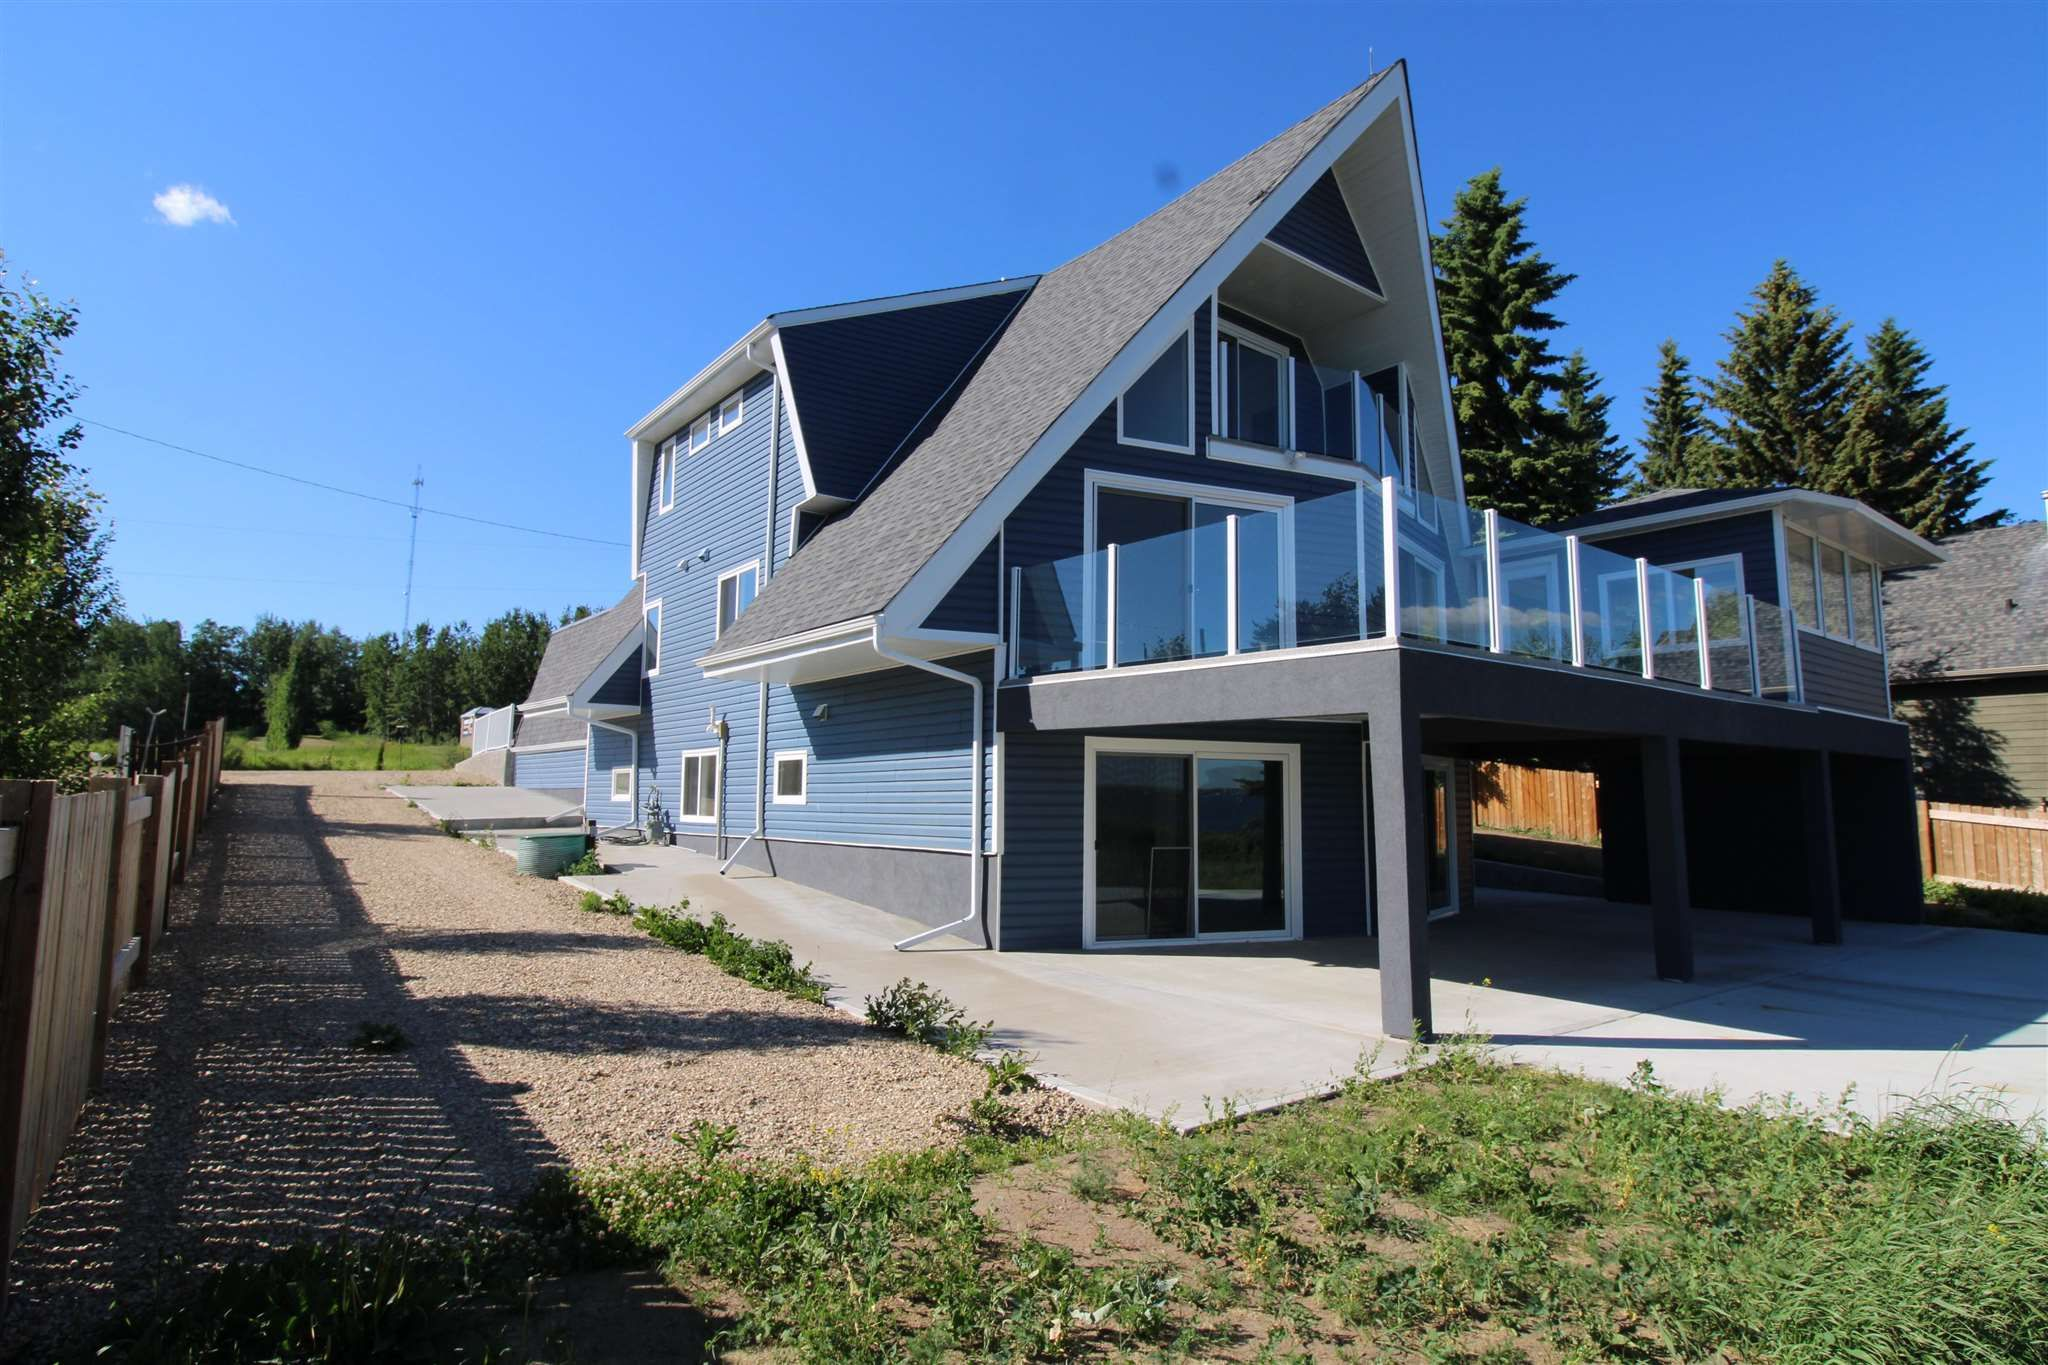 Main Photo: 9 53117 HWY 31: Rural Parkland County House for sale : MLS®# E4251901